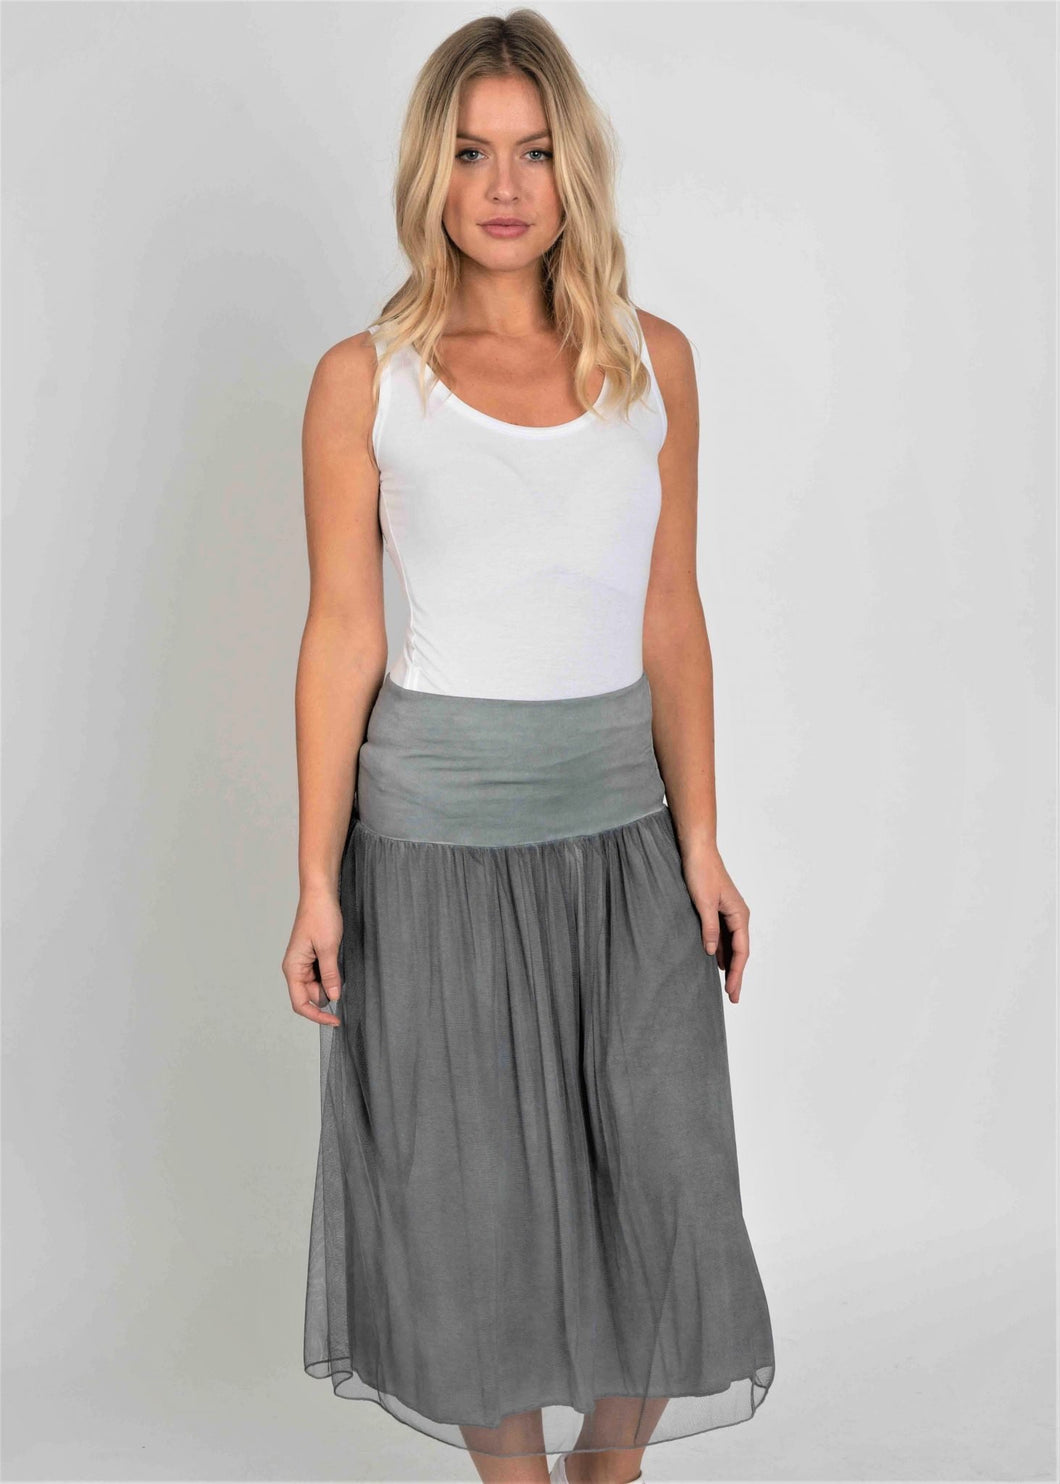 Double Layer Skirt with Netting